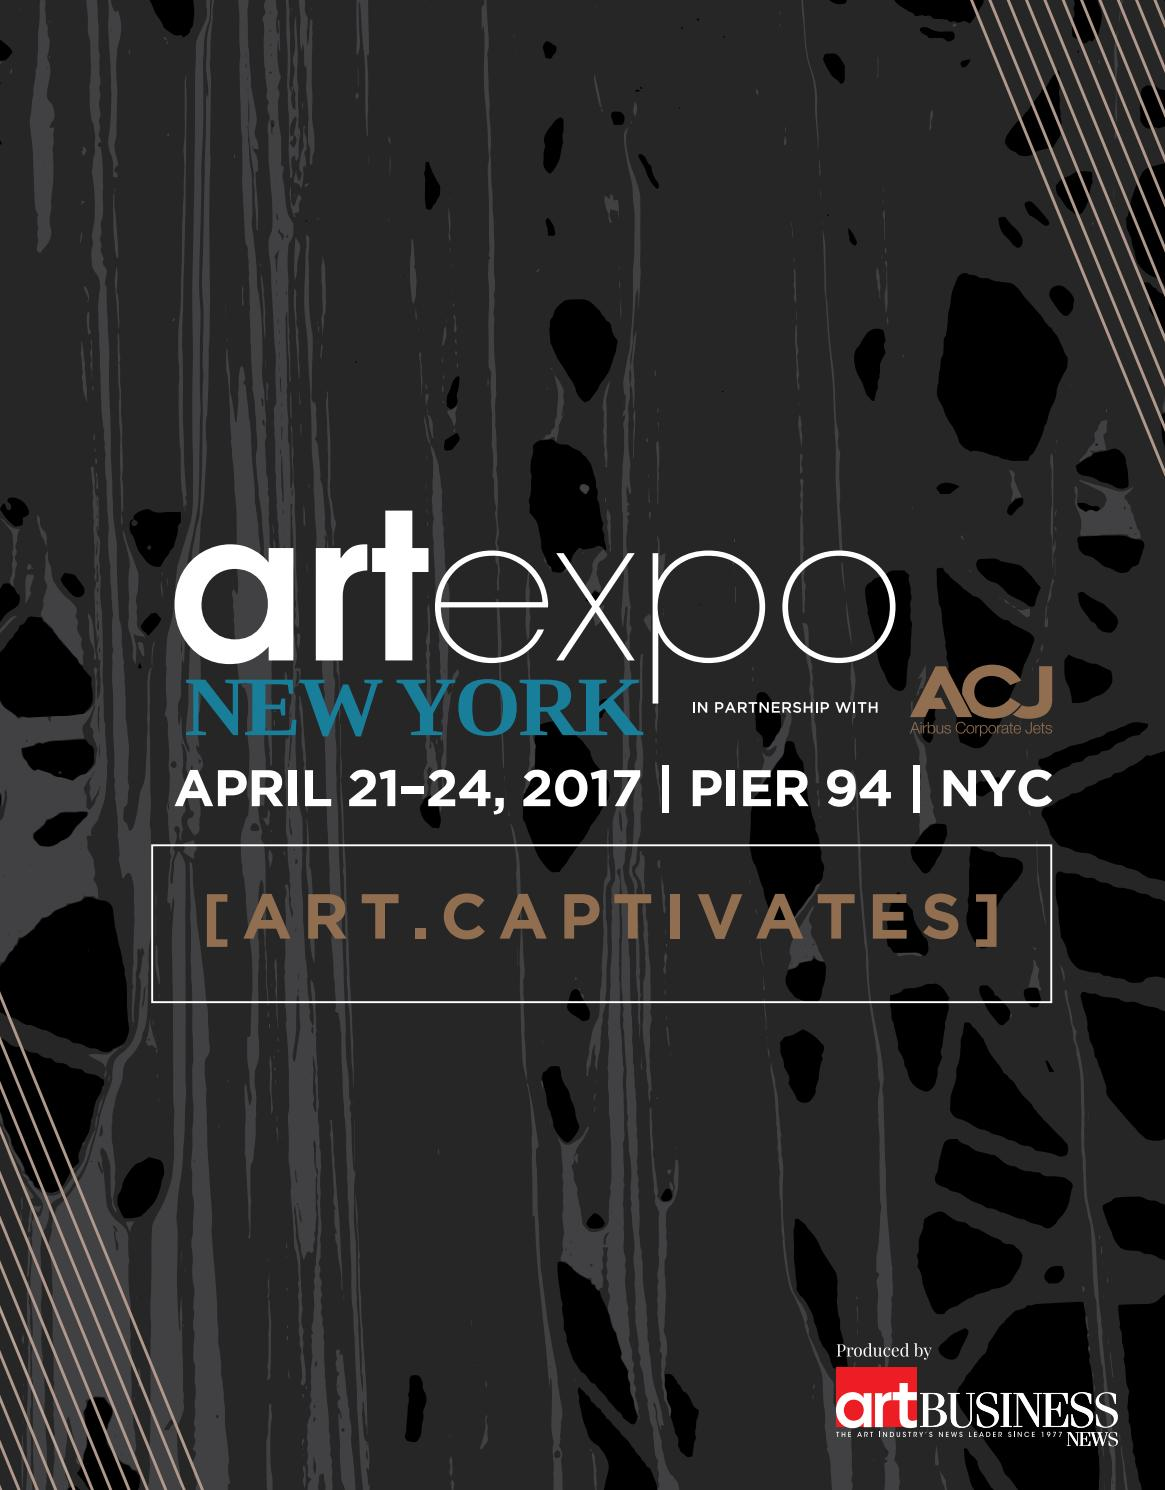 Artexpo New York 2017 Catalog By Redwood Media Group Issuu Proper Routing Of Electric Wires In Metal Studs C Carson Dunlop